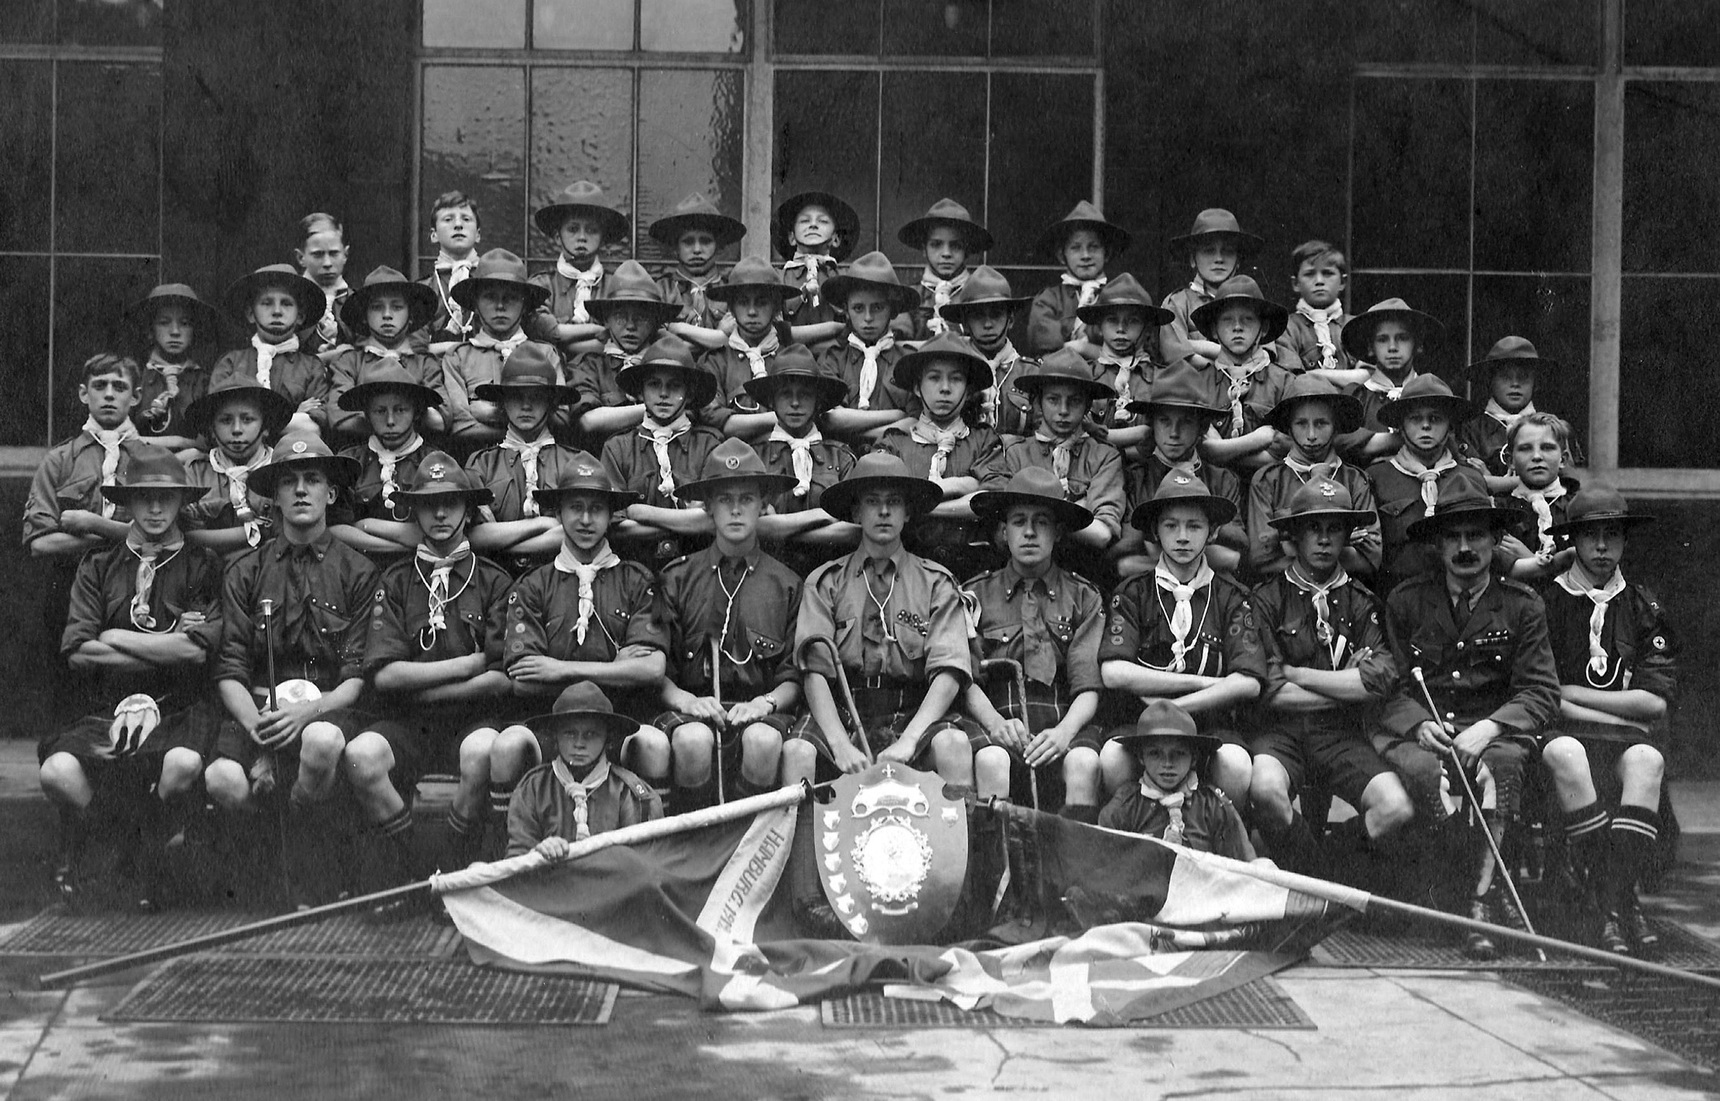 Leith Scout Group 1930s